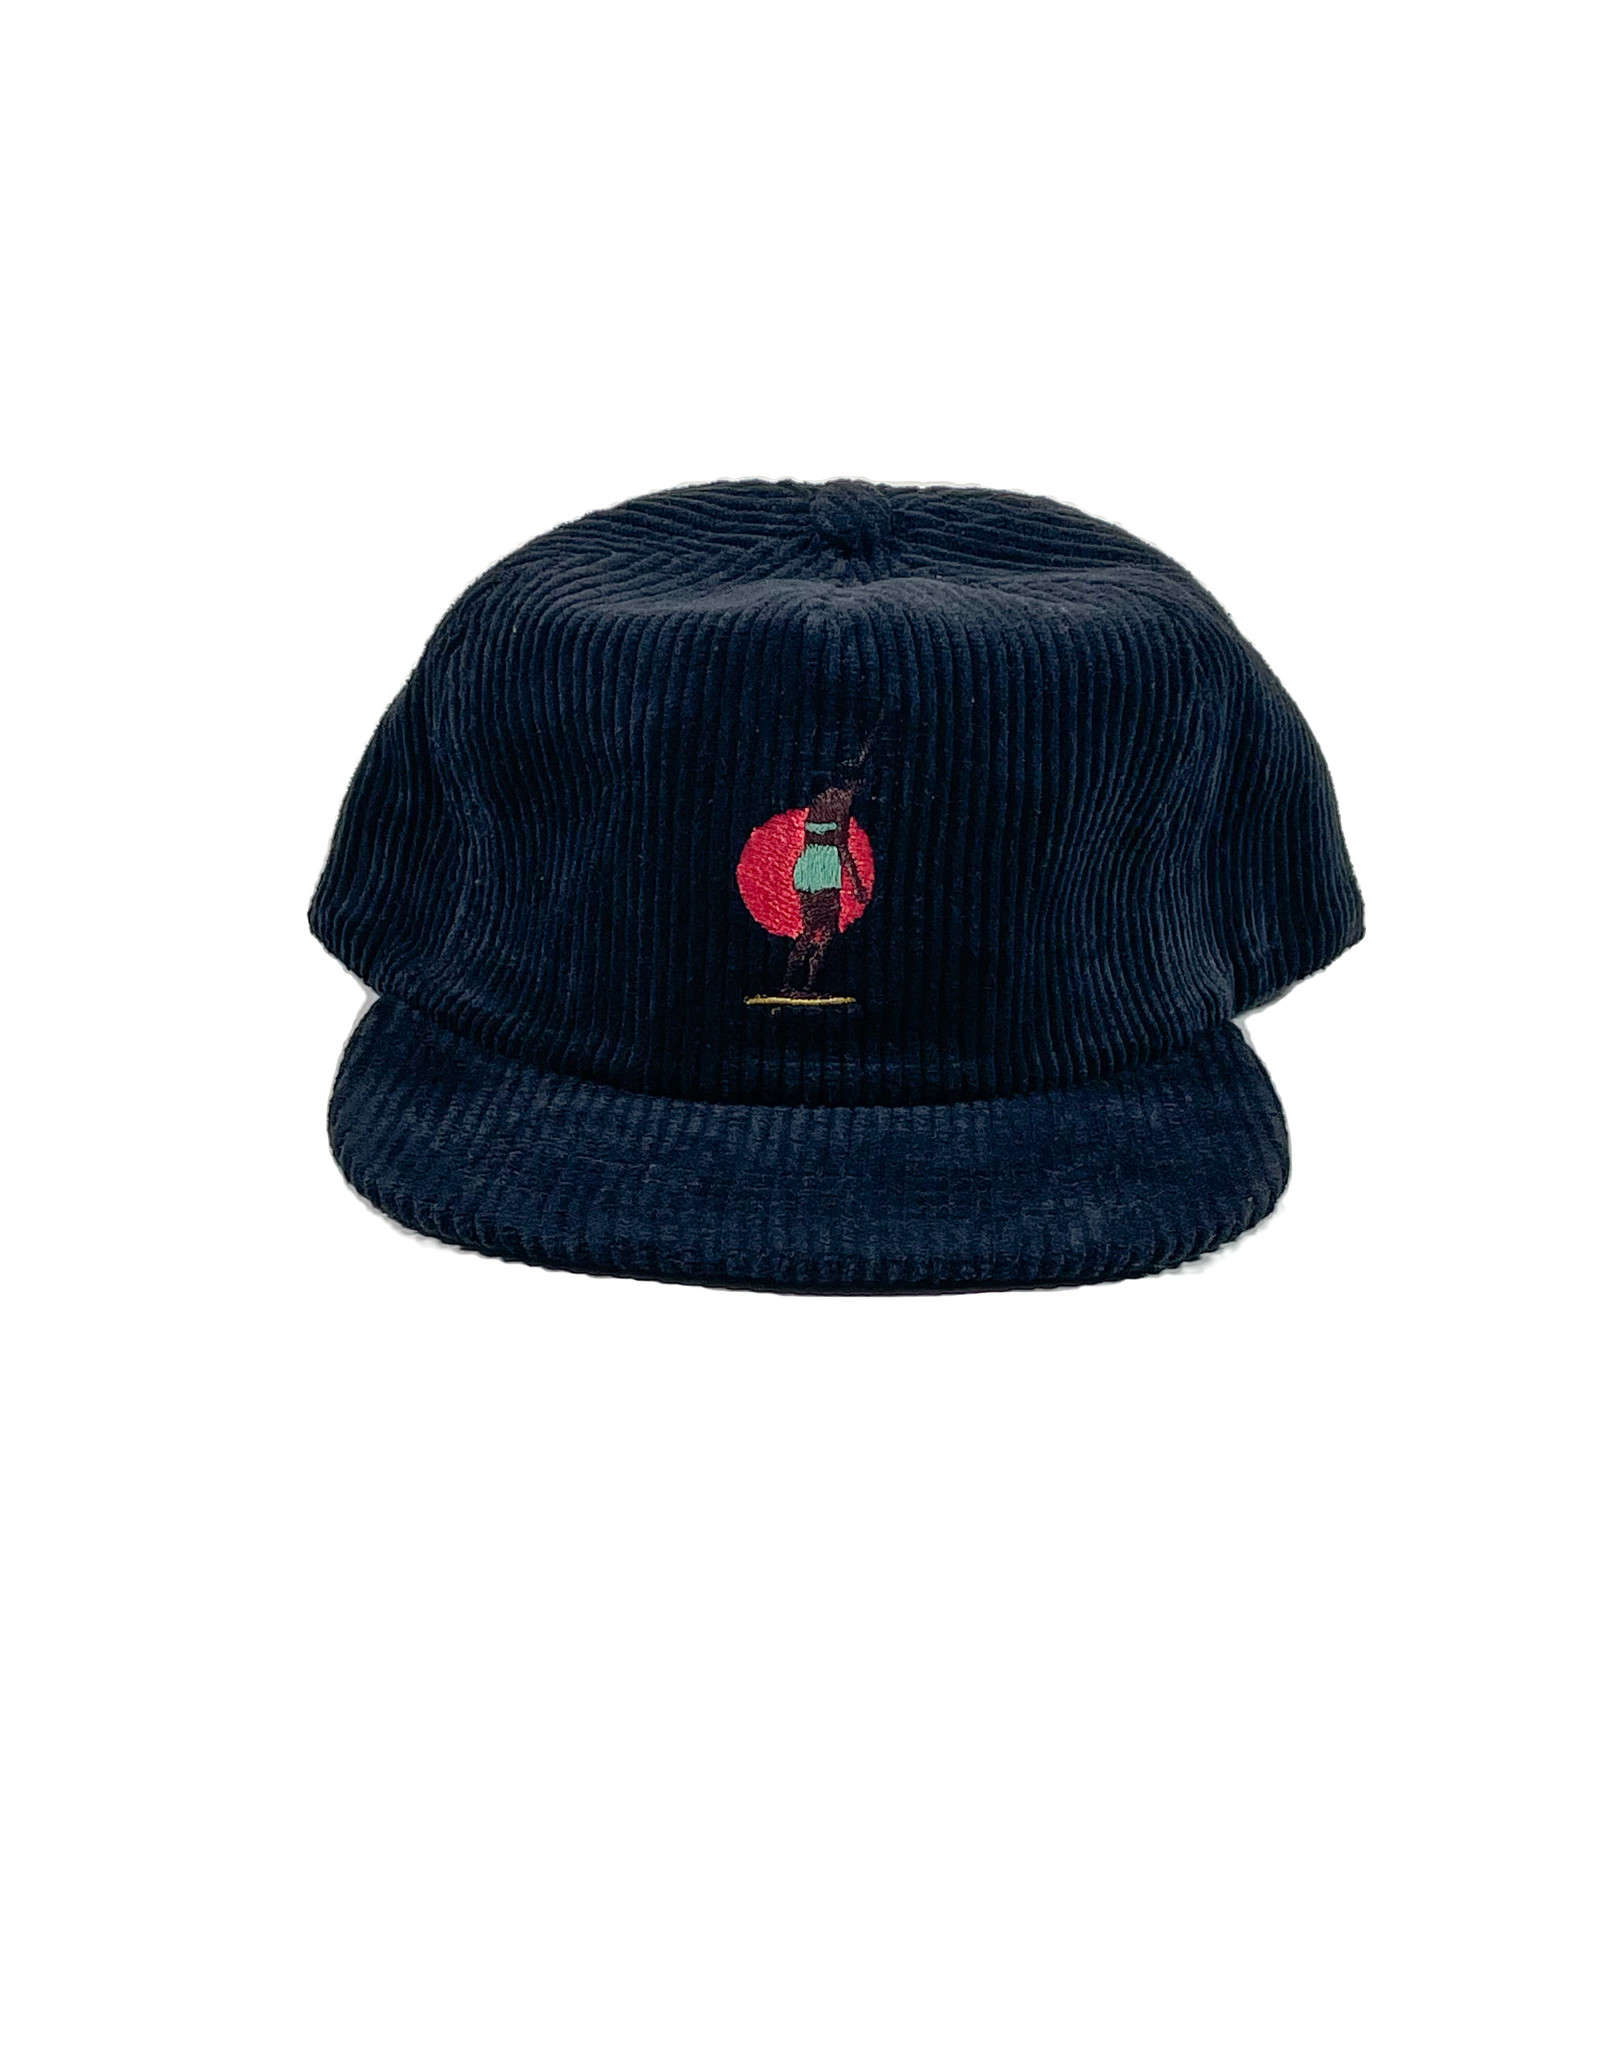 LESS THAN LOCAL LESS THAN LOCAL SOLIDARITY HAT